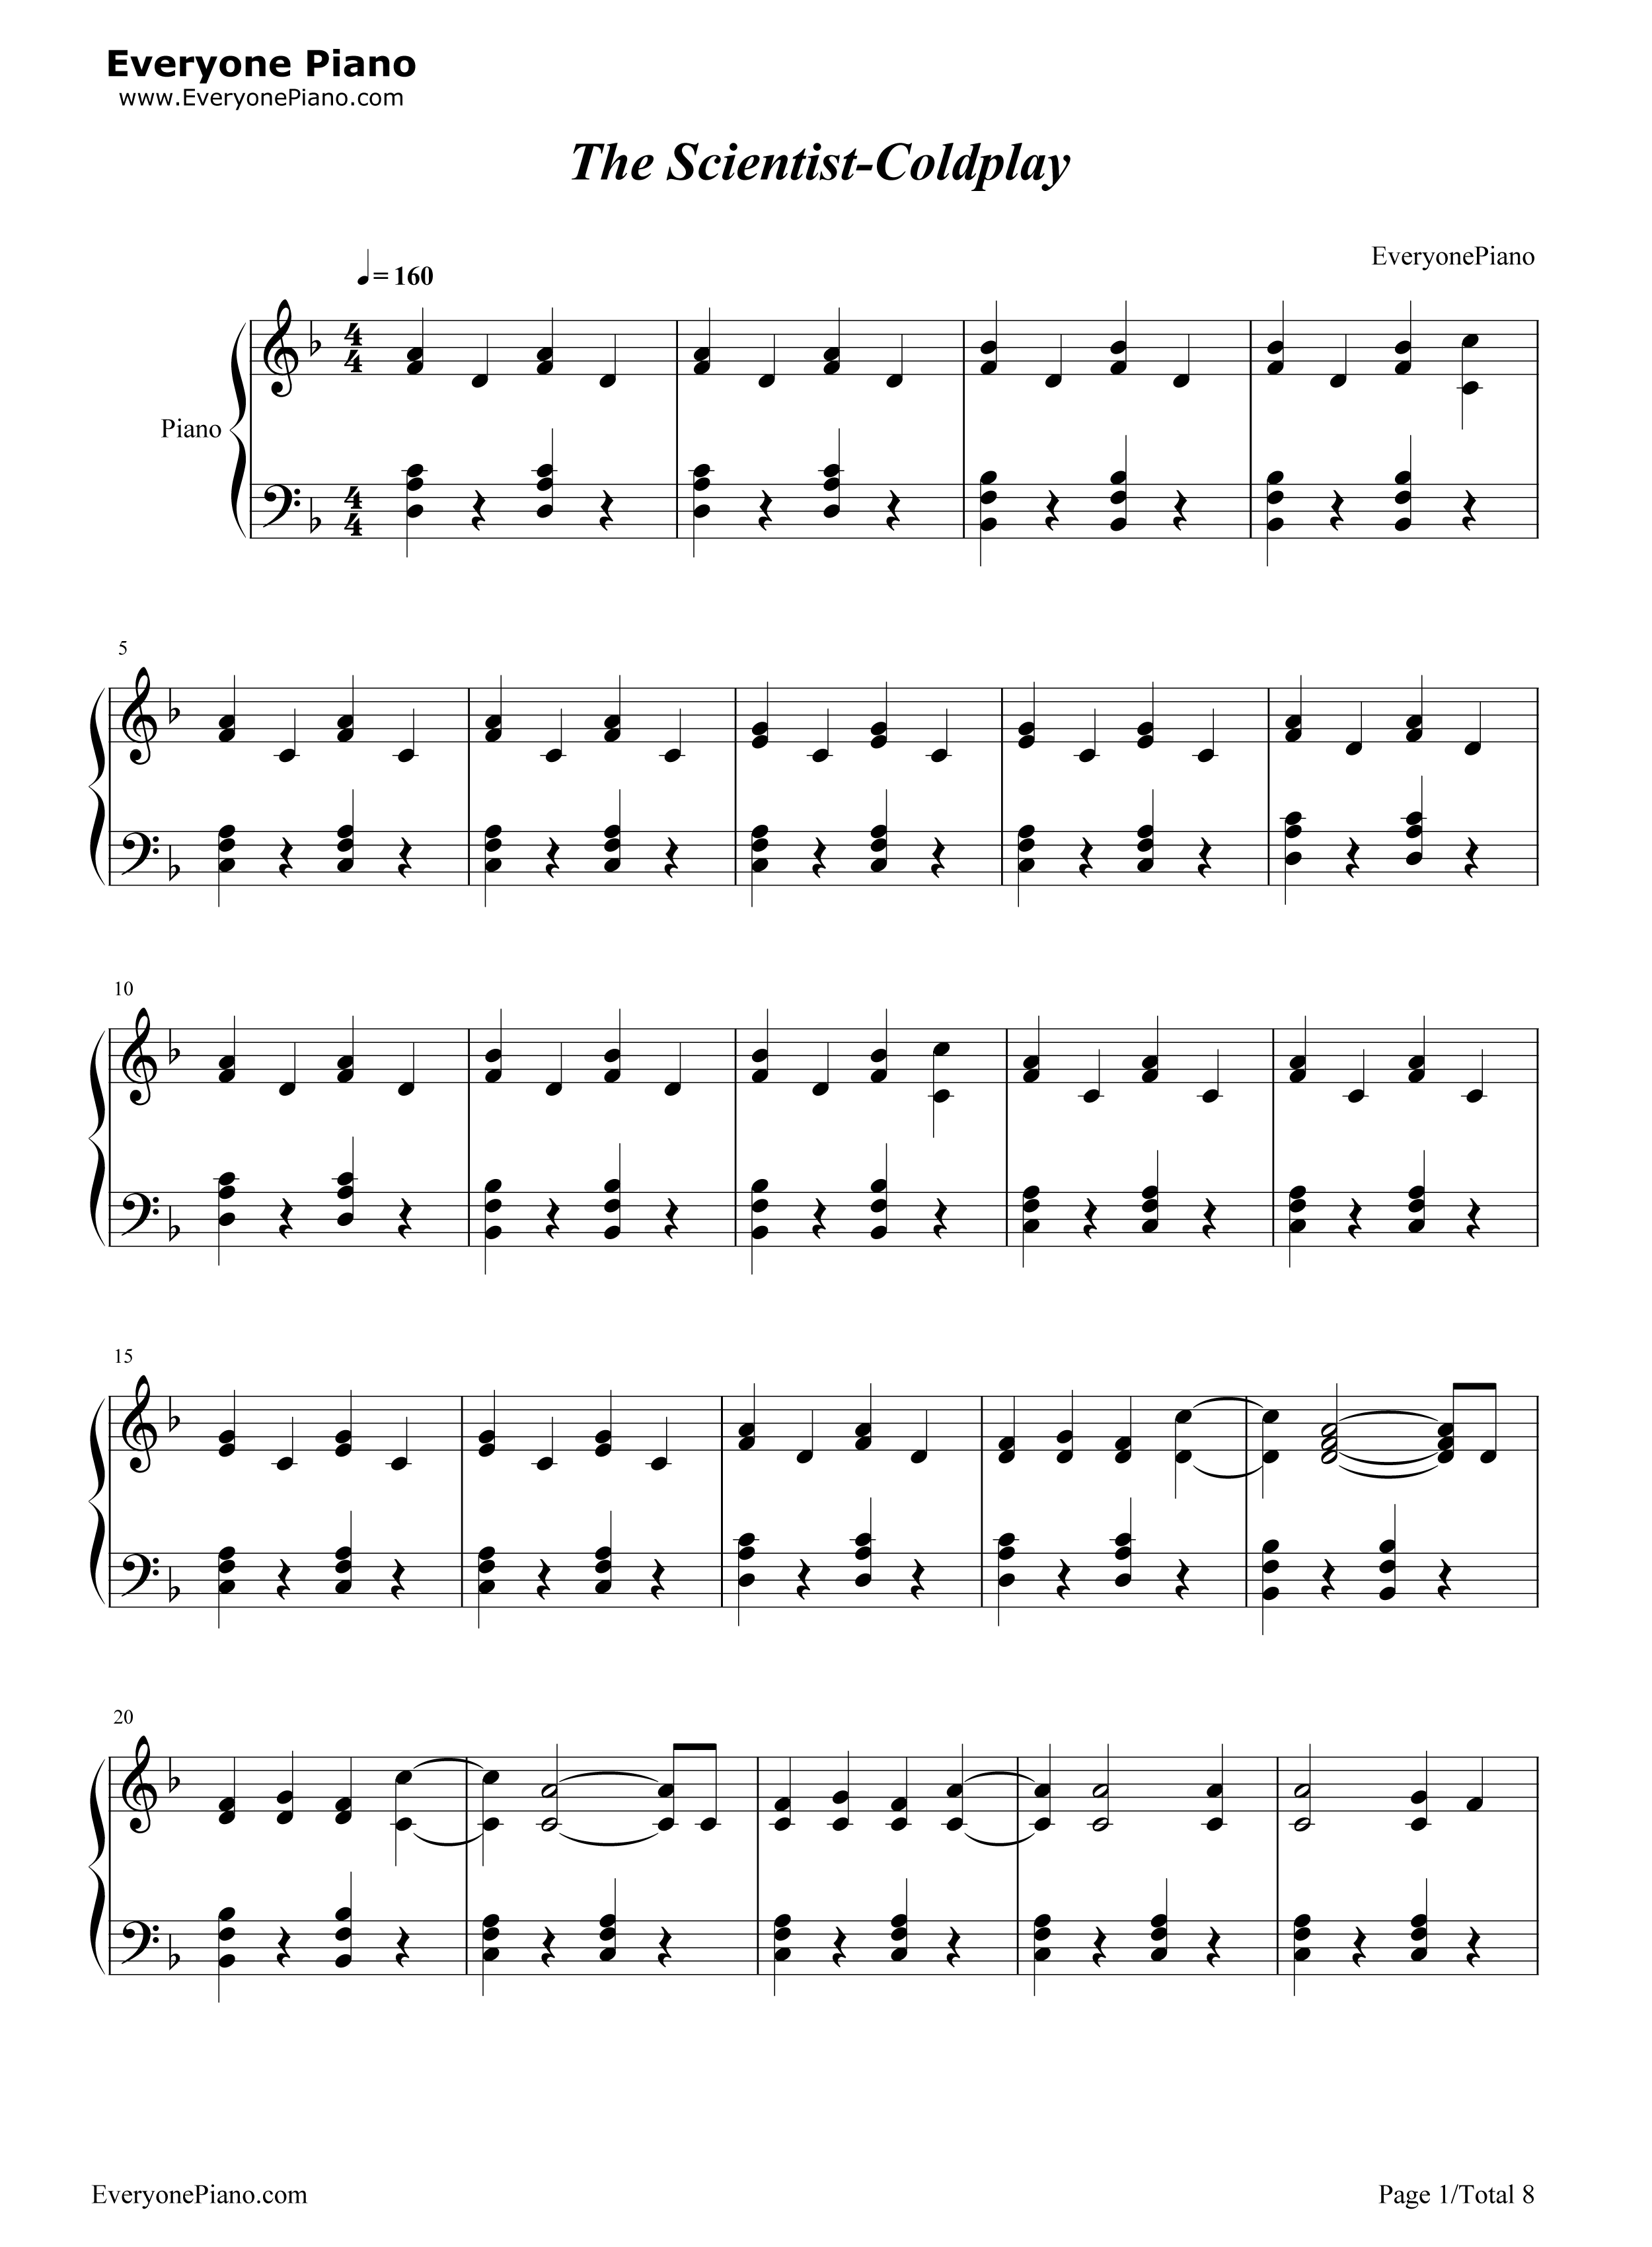 Piano tabs the scientist music sheets chords tablature and the scientist coldplay stave preview 1 free piano sheet music u0026 piano chords baditri Gallery